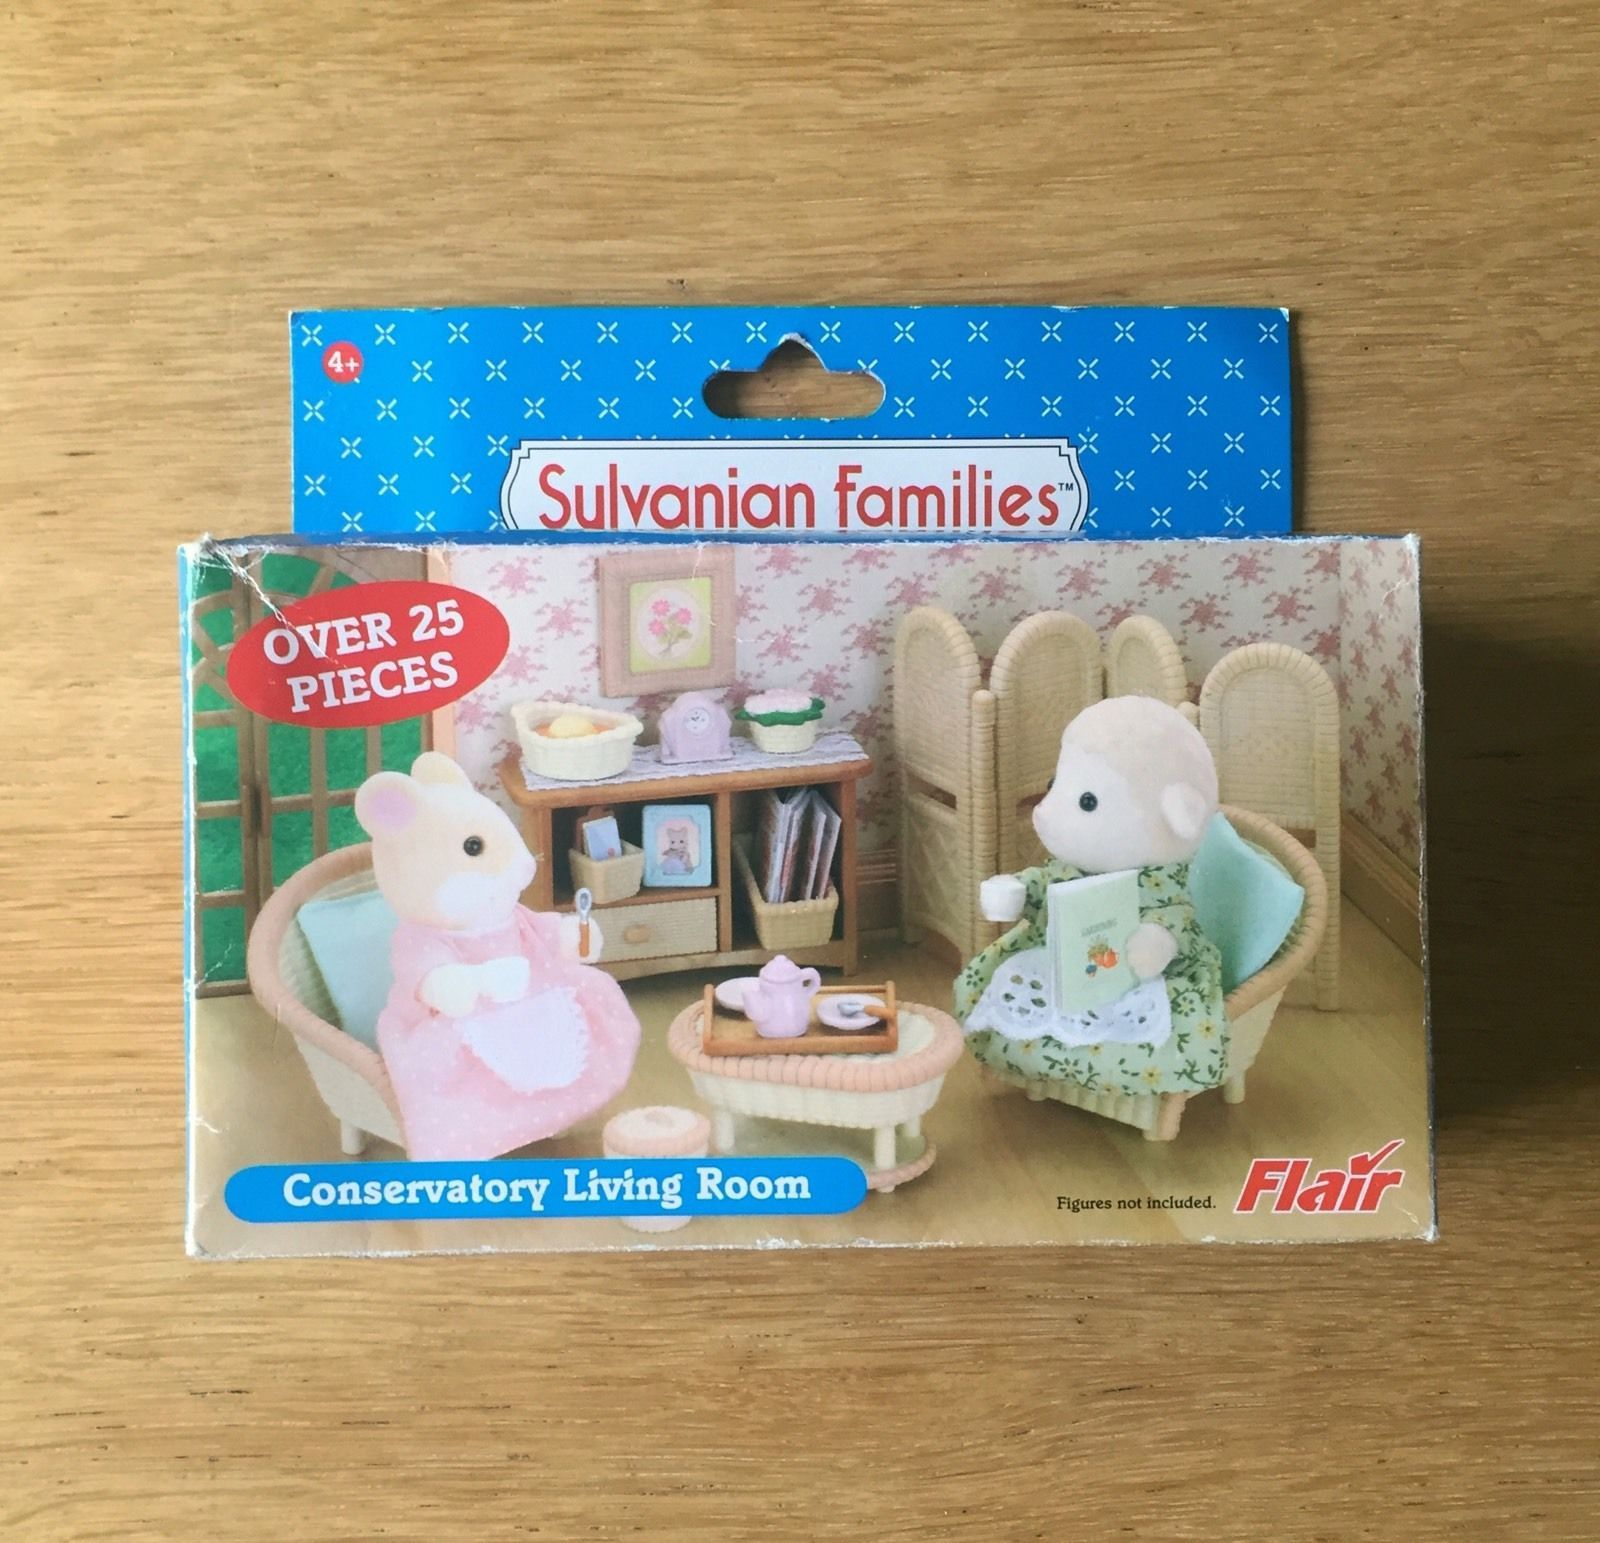 details about sylvanian families flair conservatory living room set rare htf bnib - Sylvanian Families Living Room Set